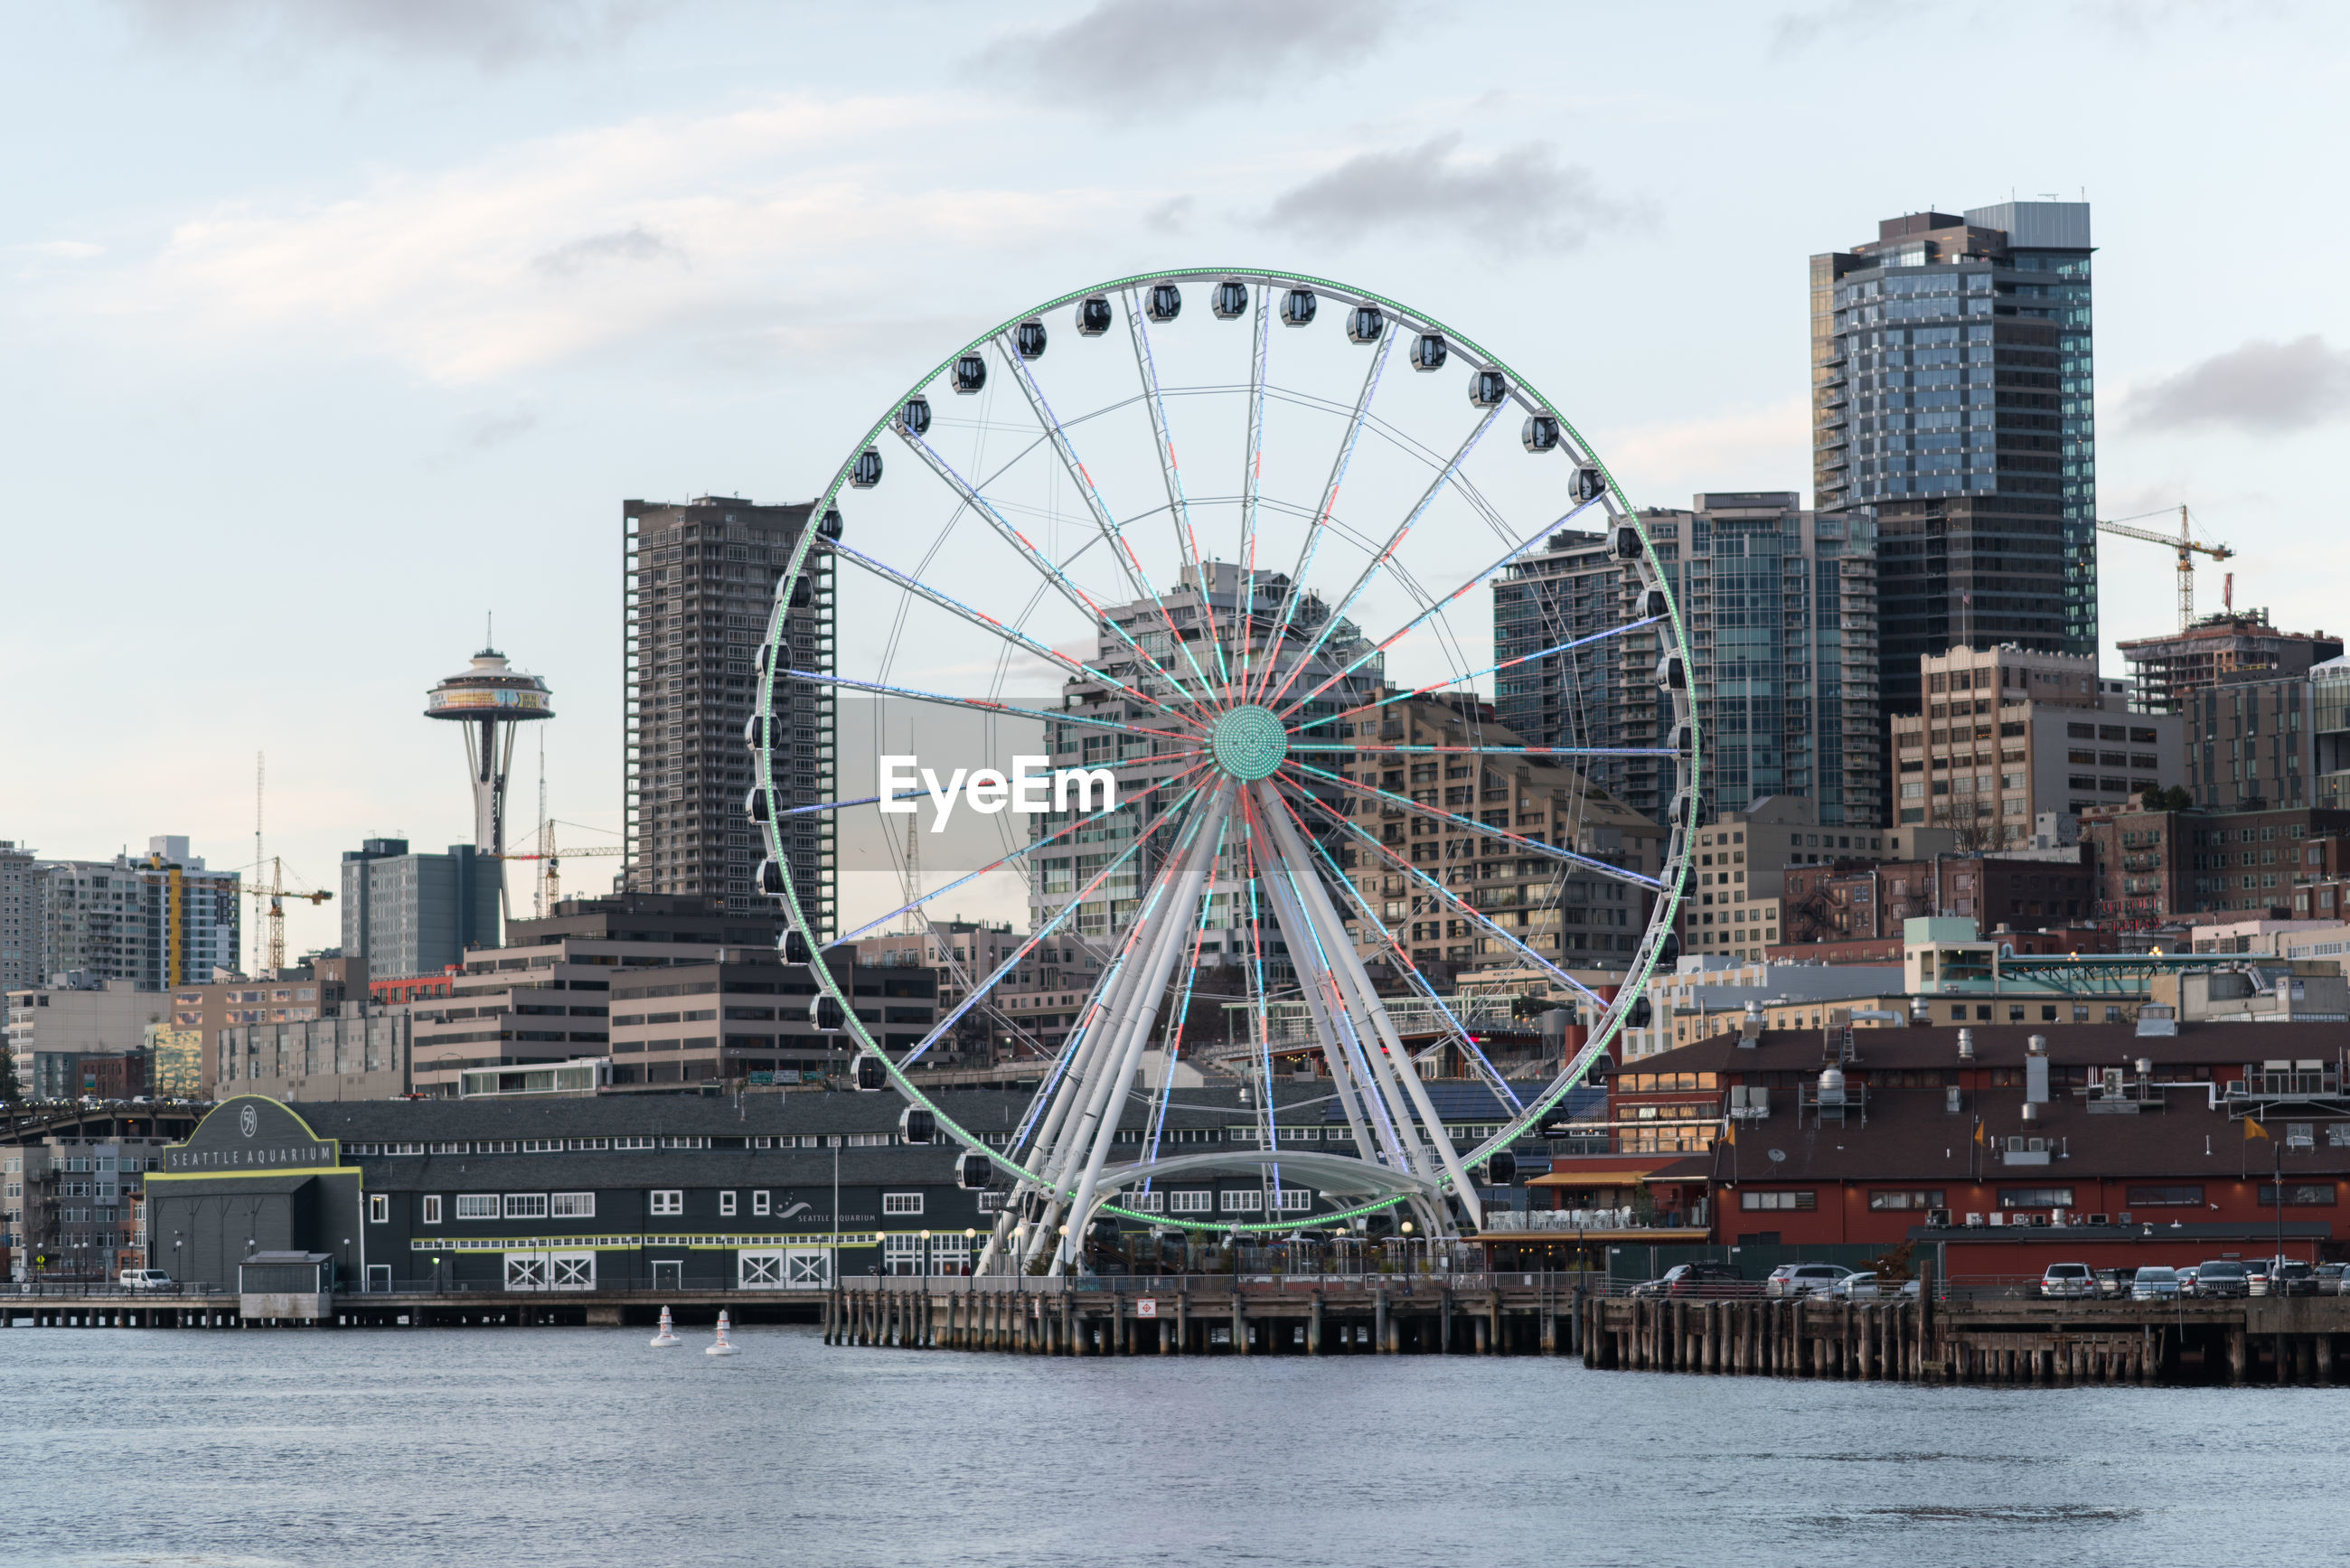 FERRIS WHEEL WITH CITY IN BACKGROUND